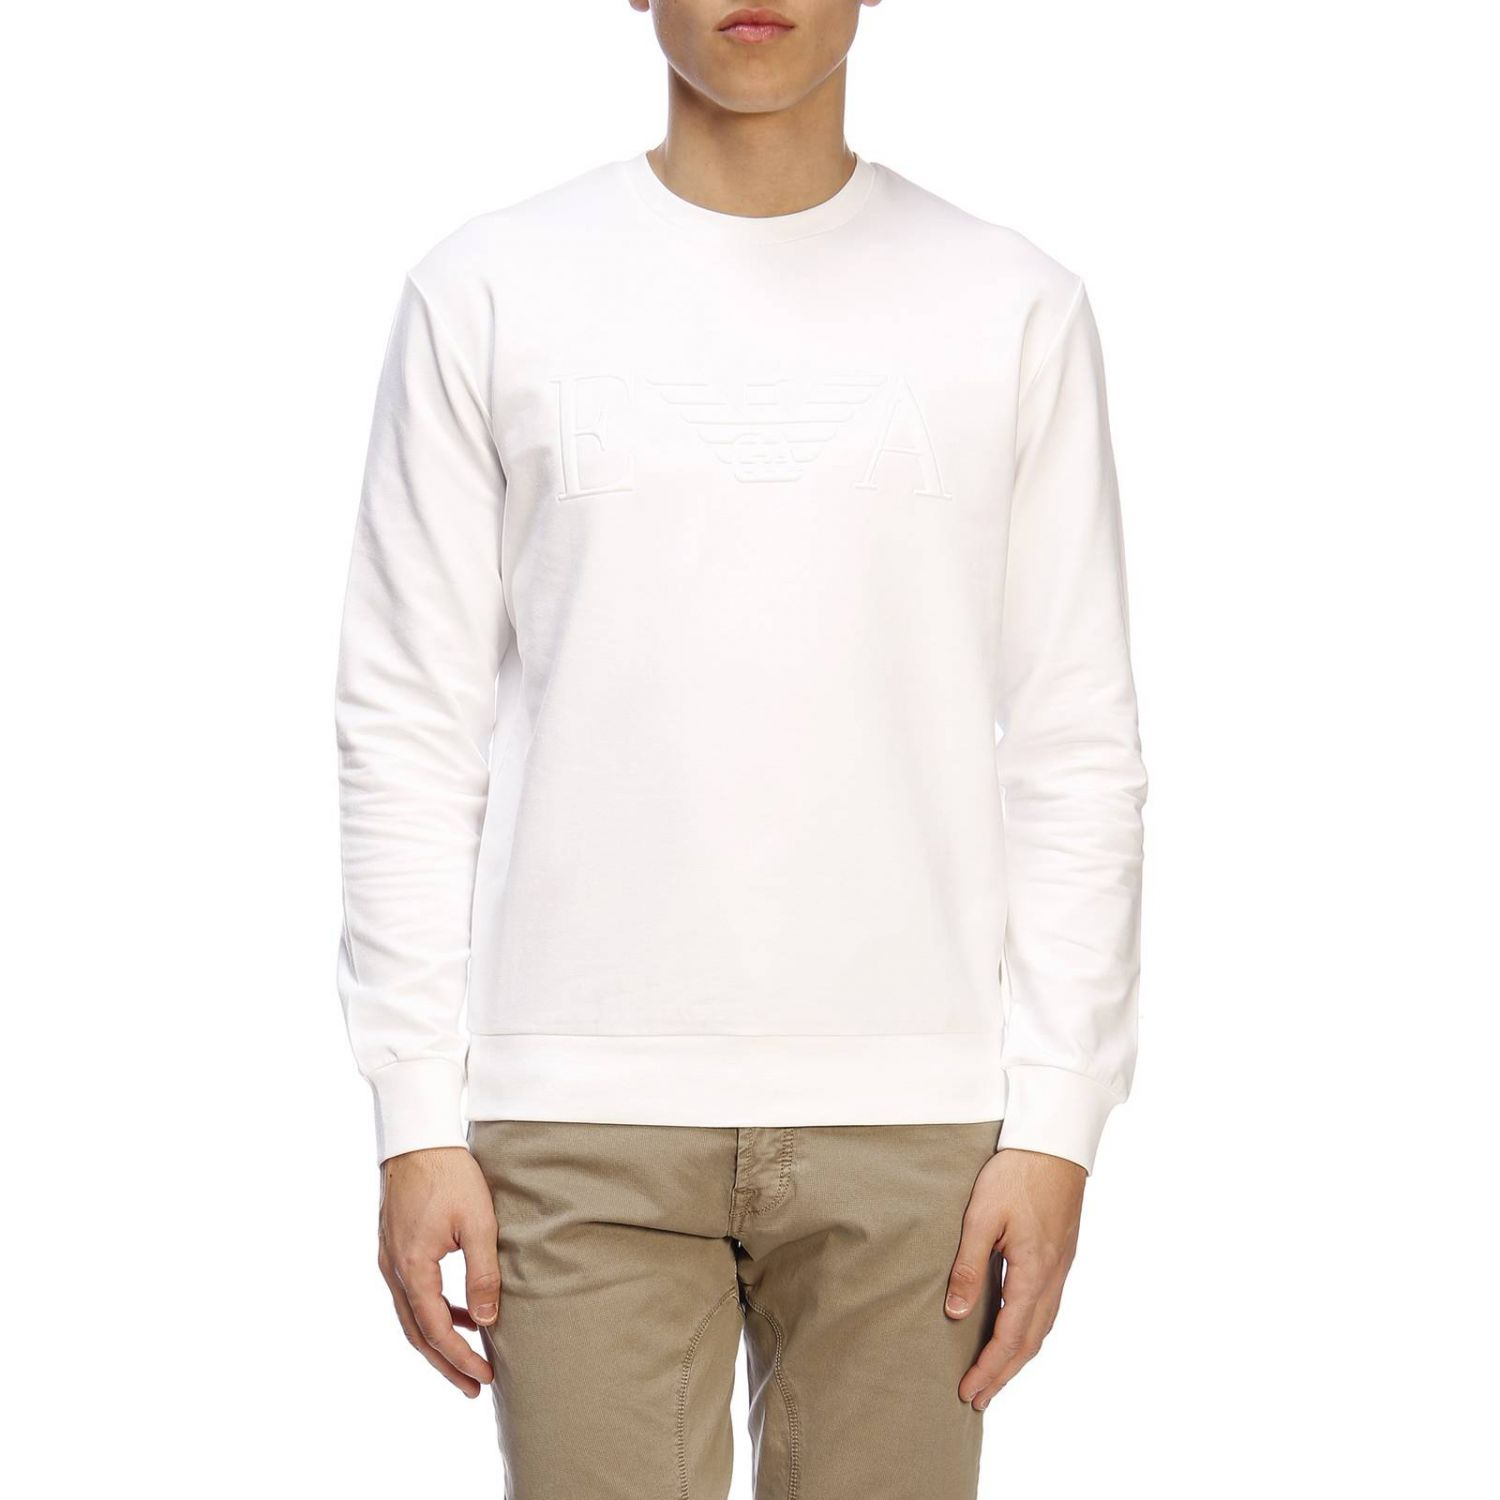 Sweater men Emporio Armani white 1